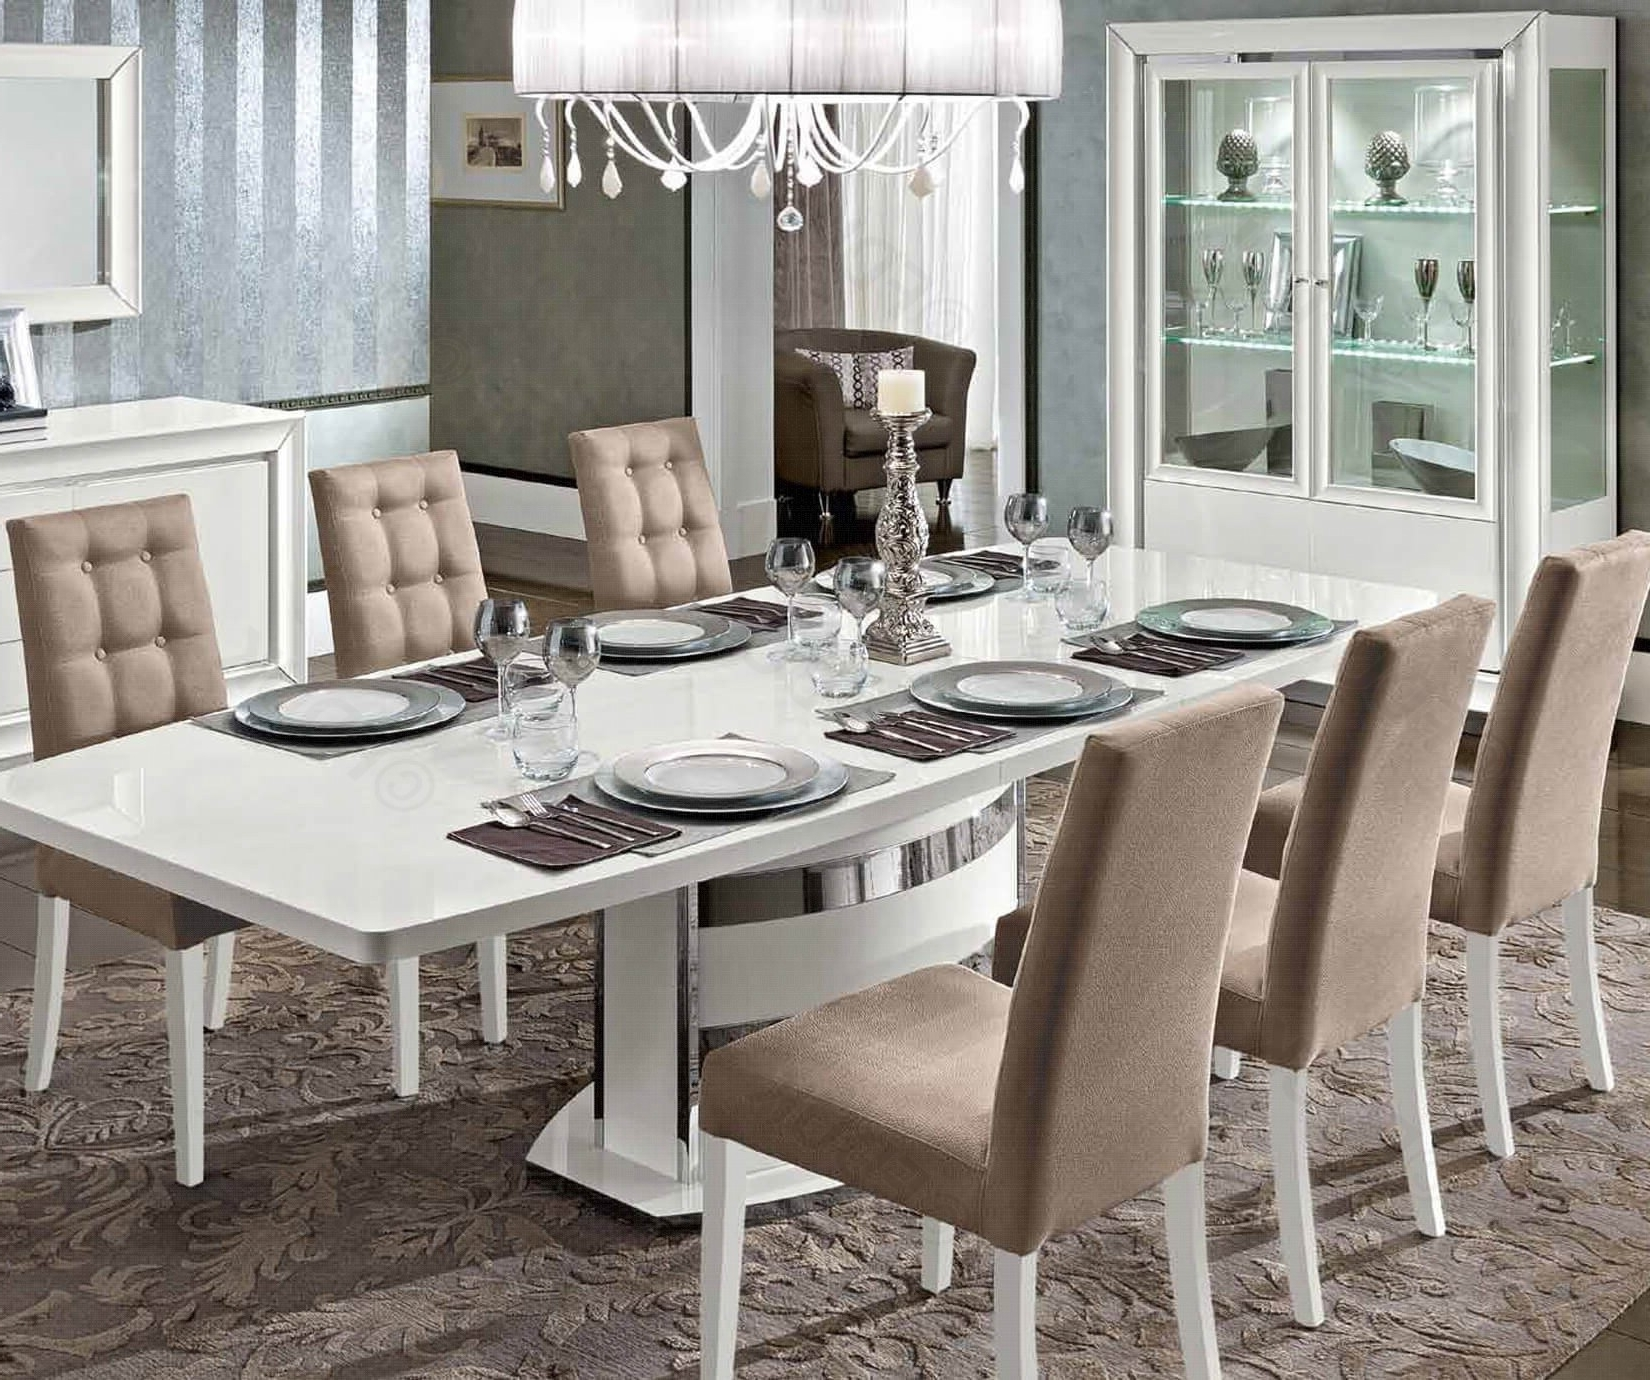 2018 Camel Group Roma White High Gloss Extending Dining Table With 6 Regarding High Gloss Extendable Dining Tables (Gallery 22 of 25)